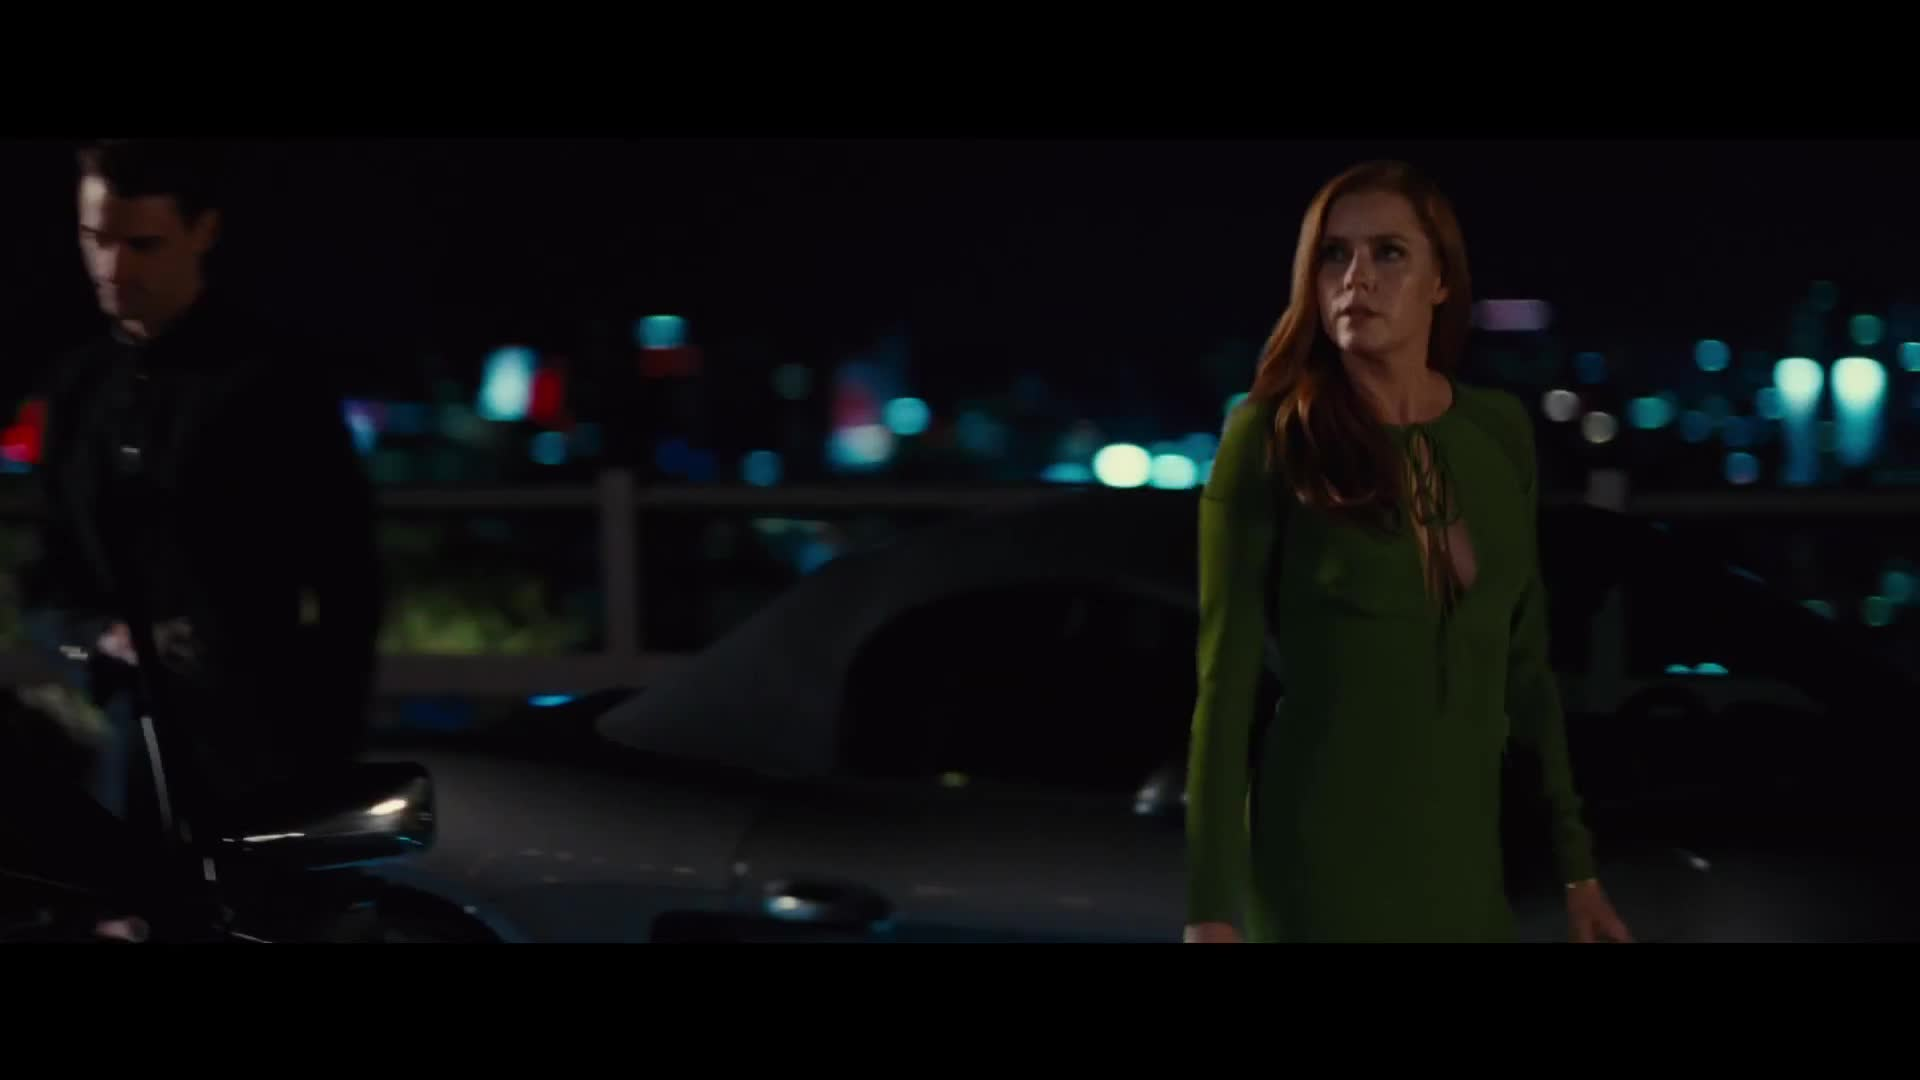 Image of: Amy Nocturnal Animals Official Trailer 2016 Jake Gyllenhaal Movie Gif Gfycat Nocturnal Animals Official Trailer 2016 Jake Gyllenhaal Movie